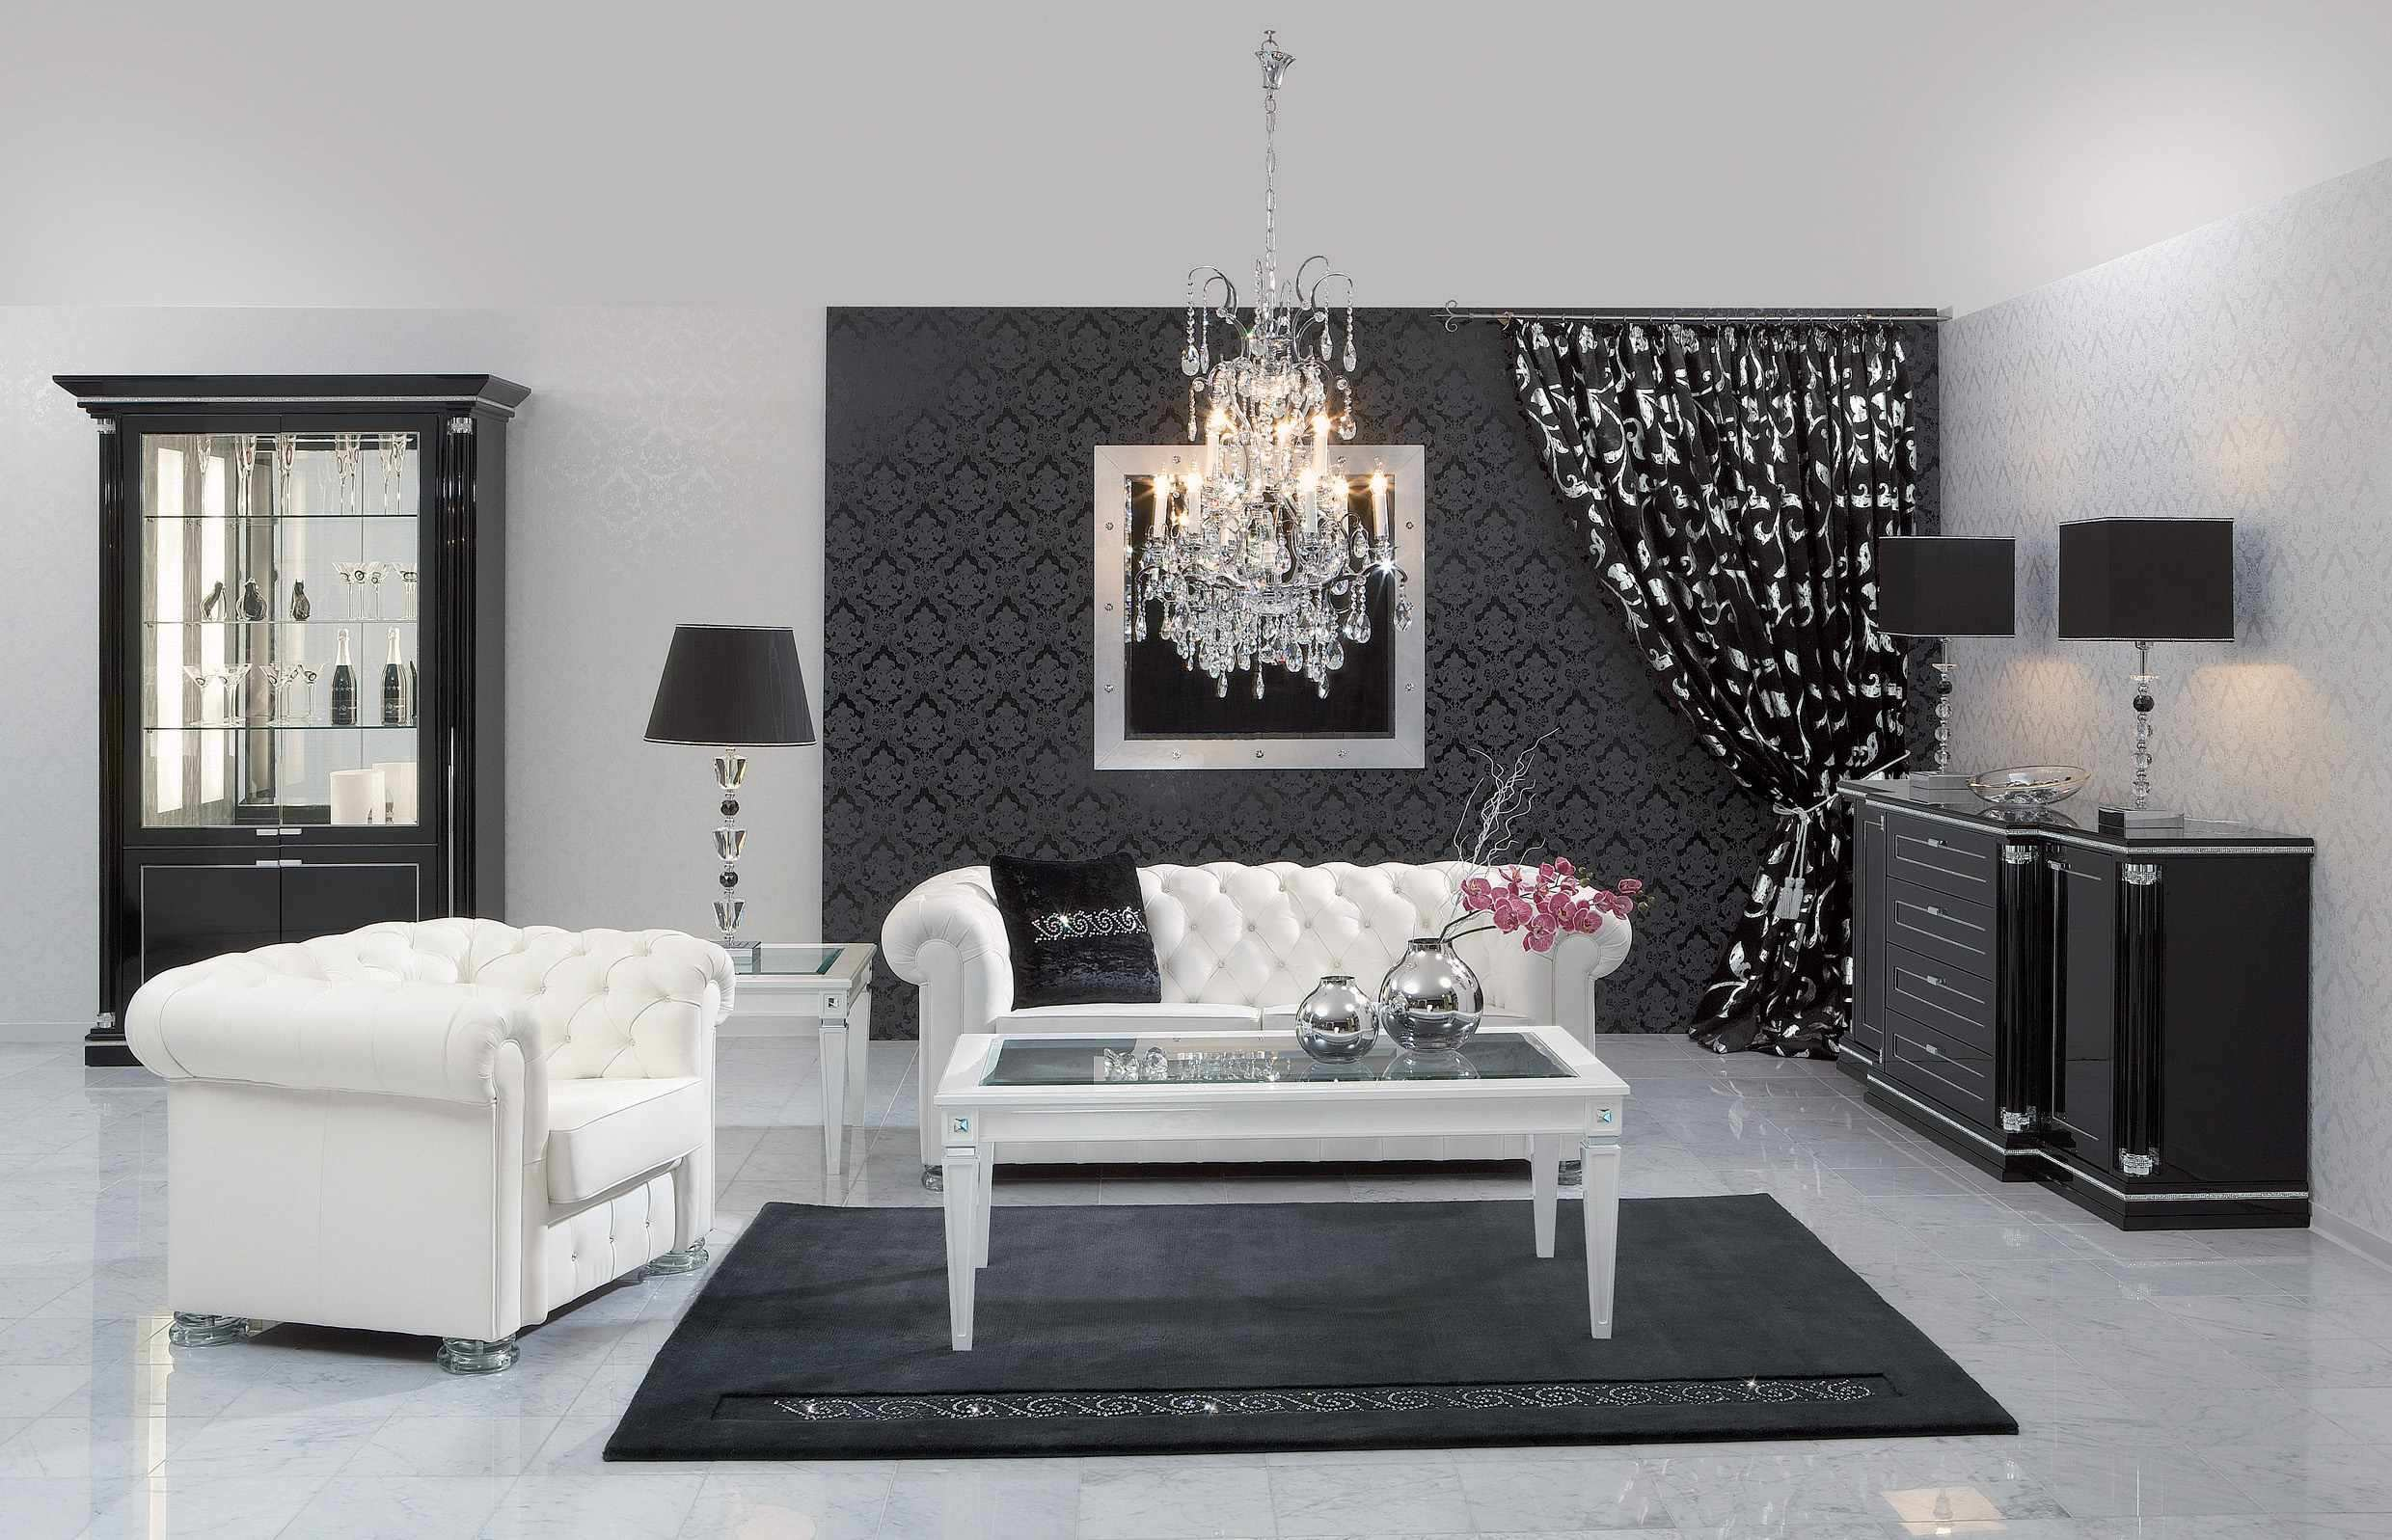 GUEST POST - Decorating With Black and White